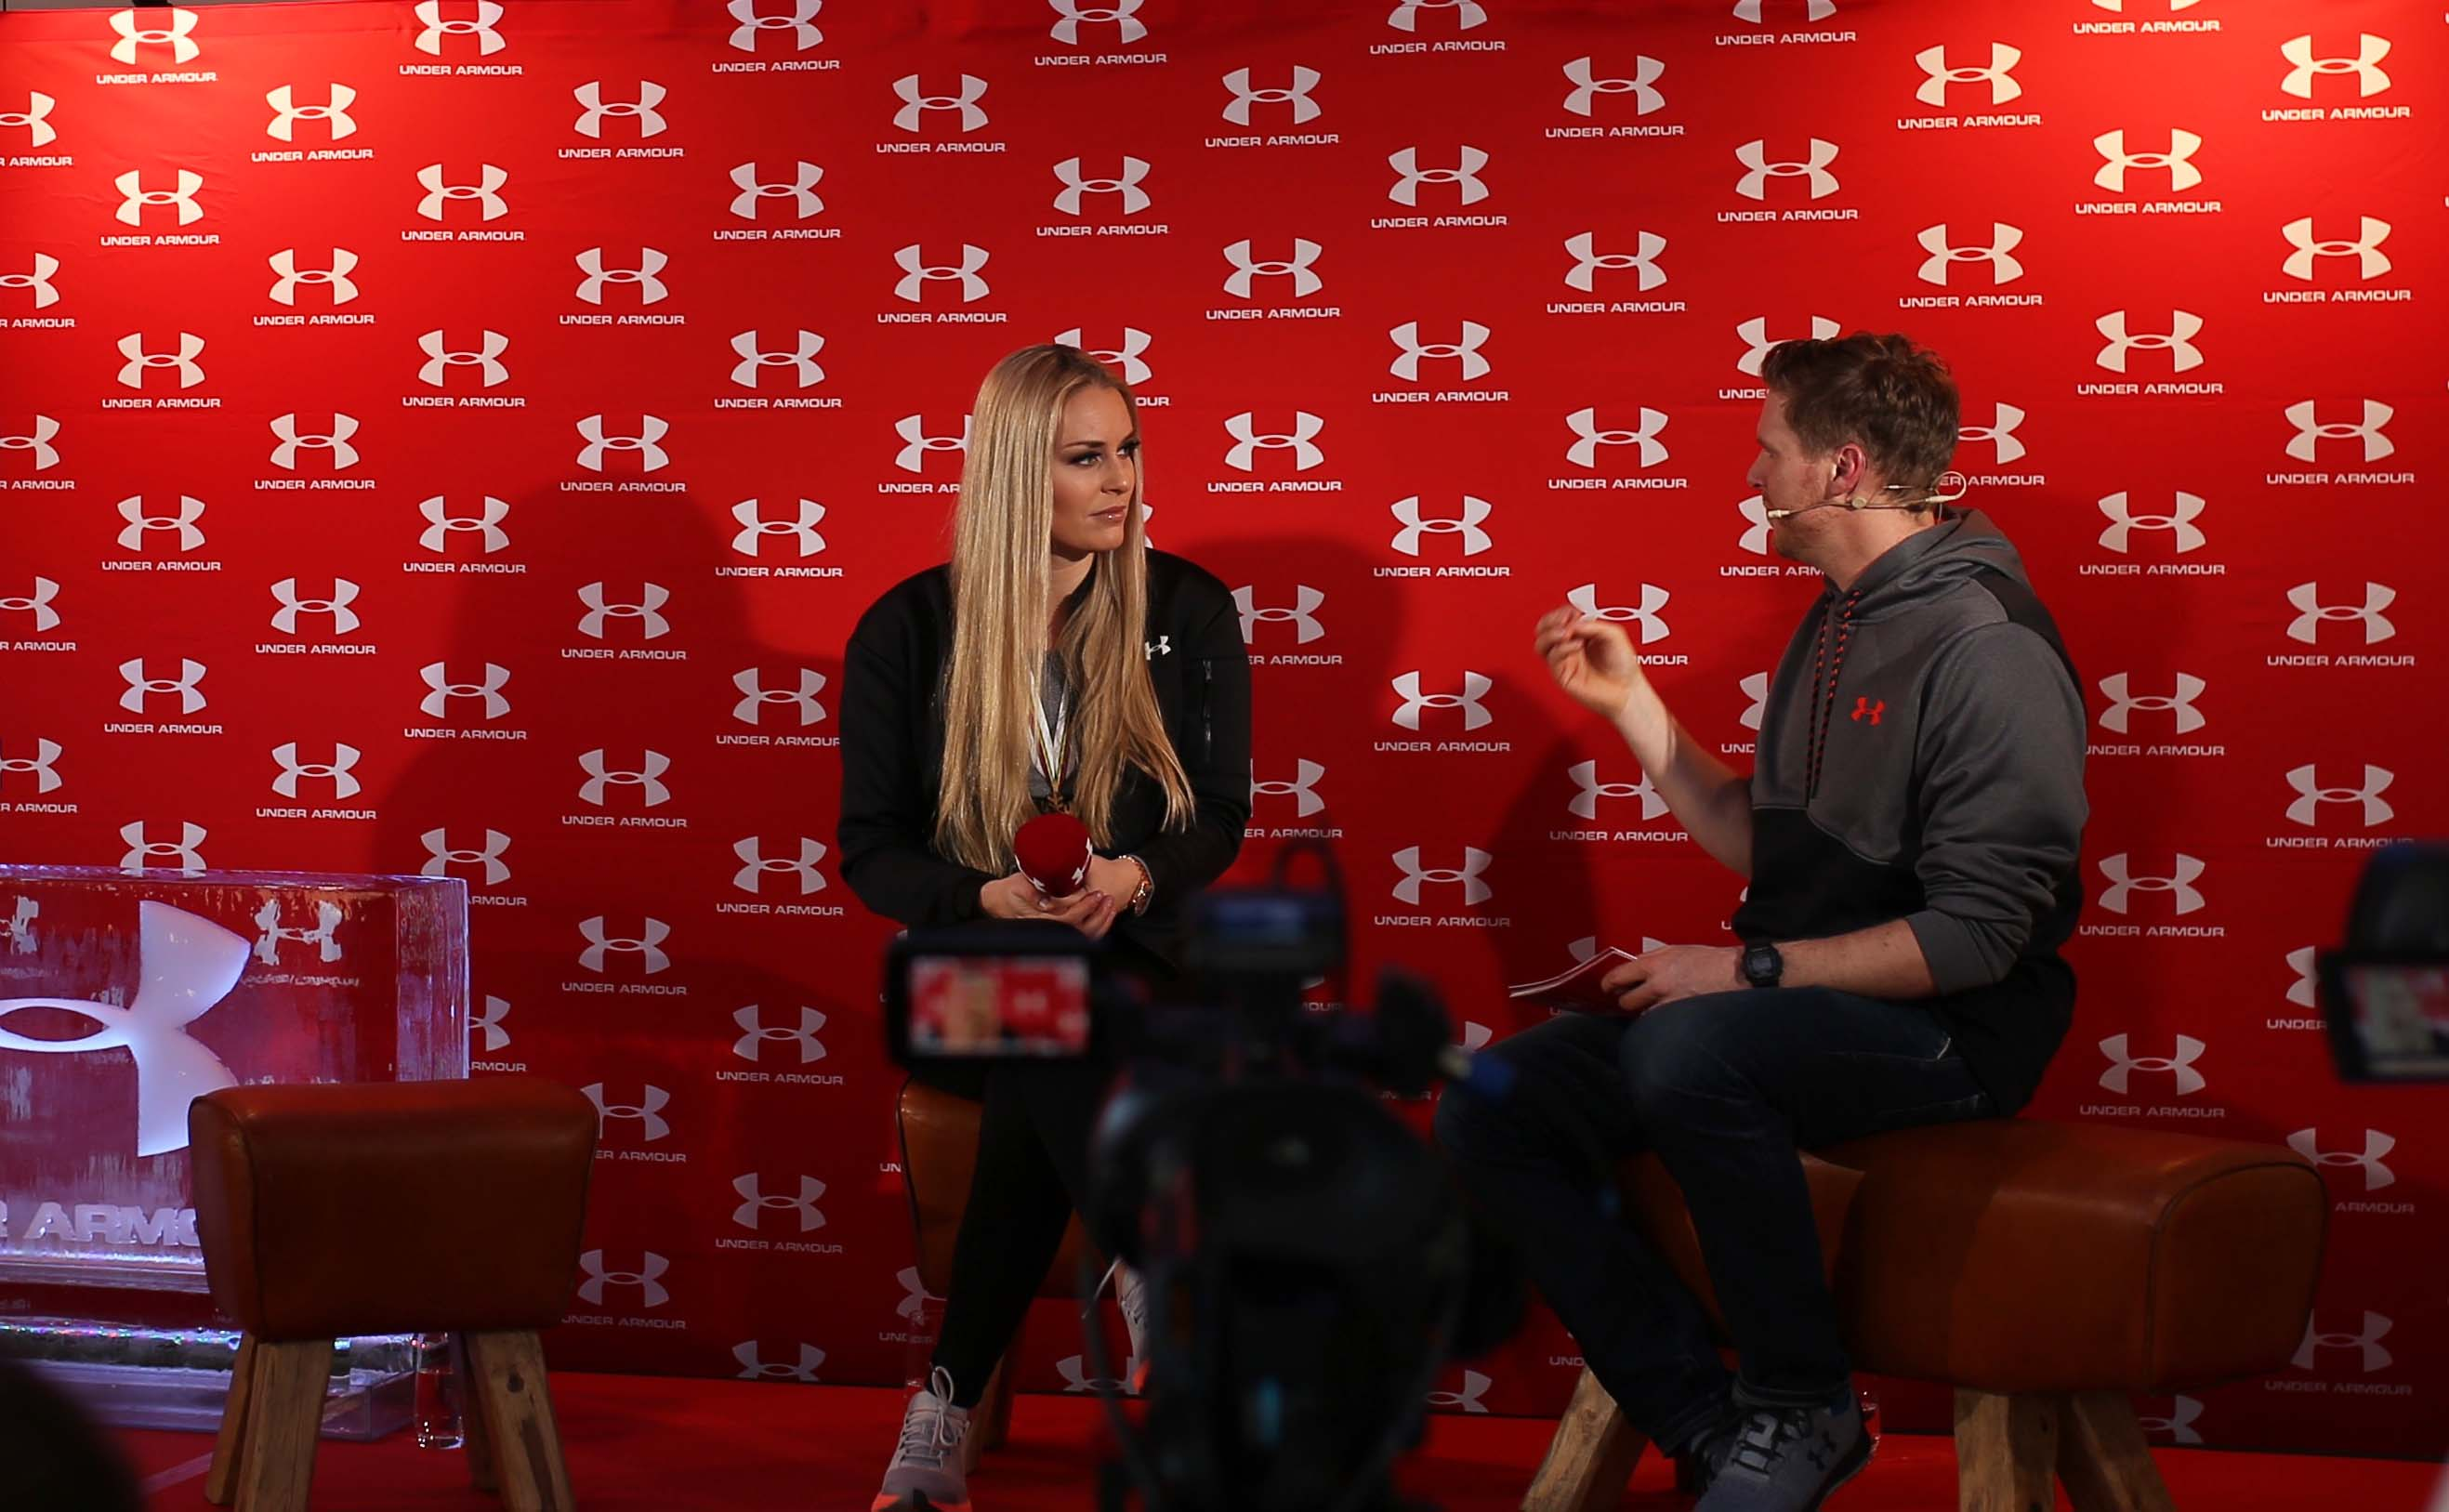 Strong is the new beautiful - Under Armour Event in St.Moritz